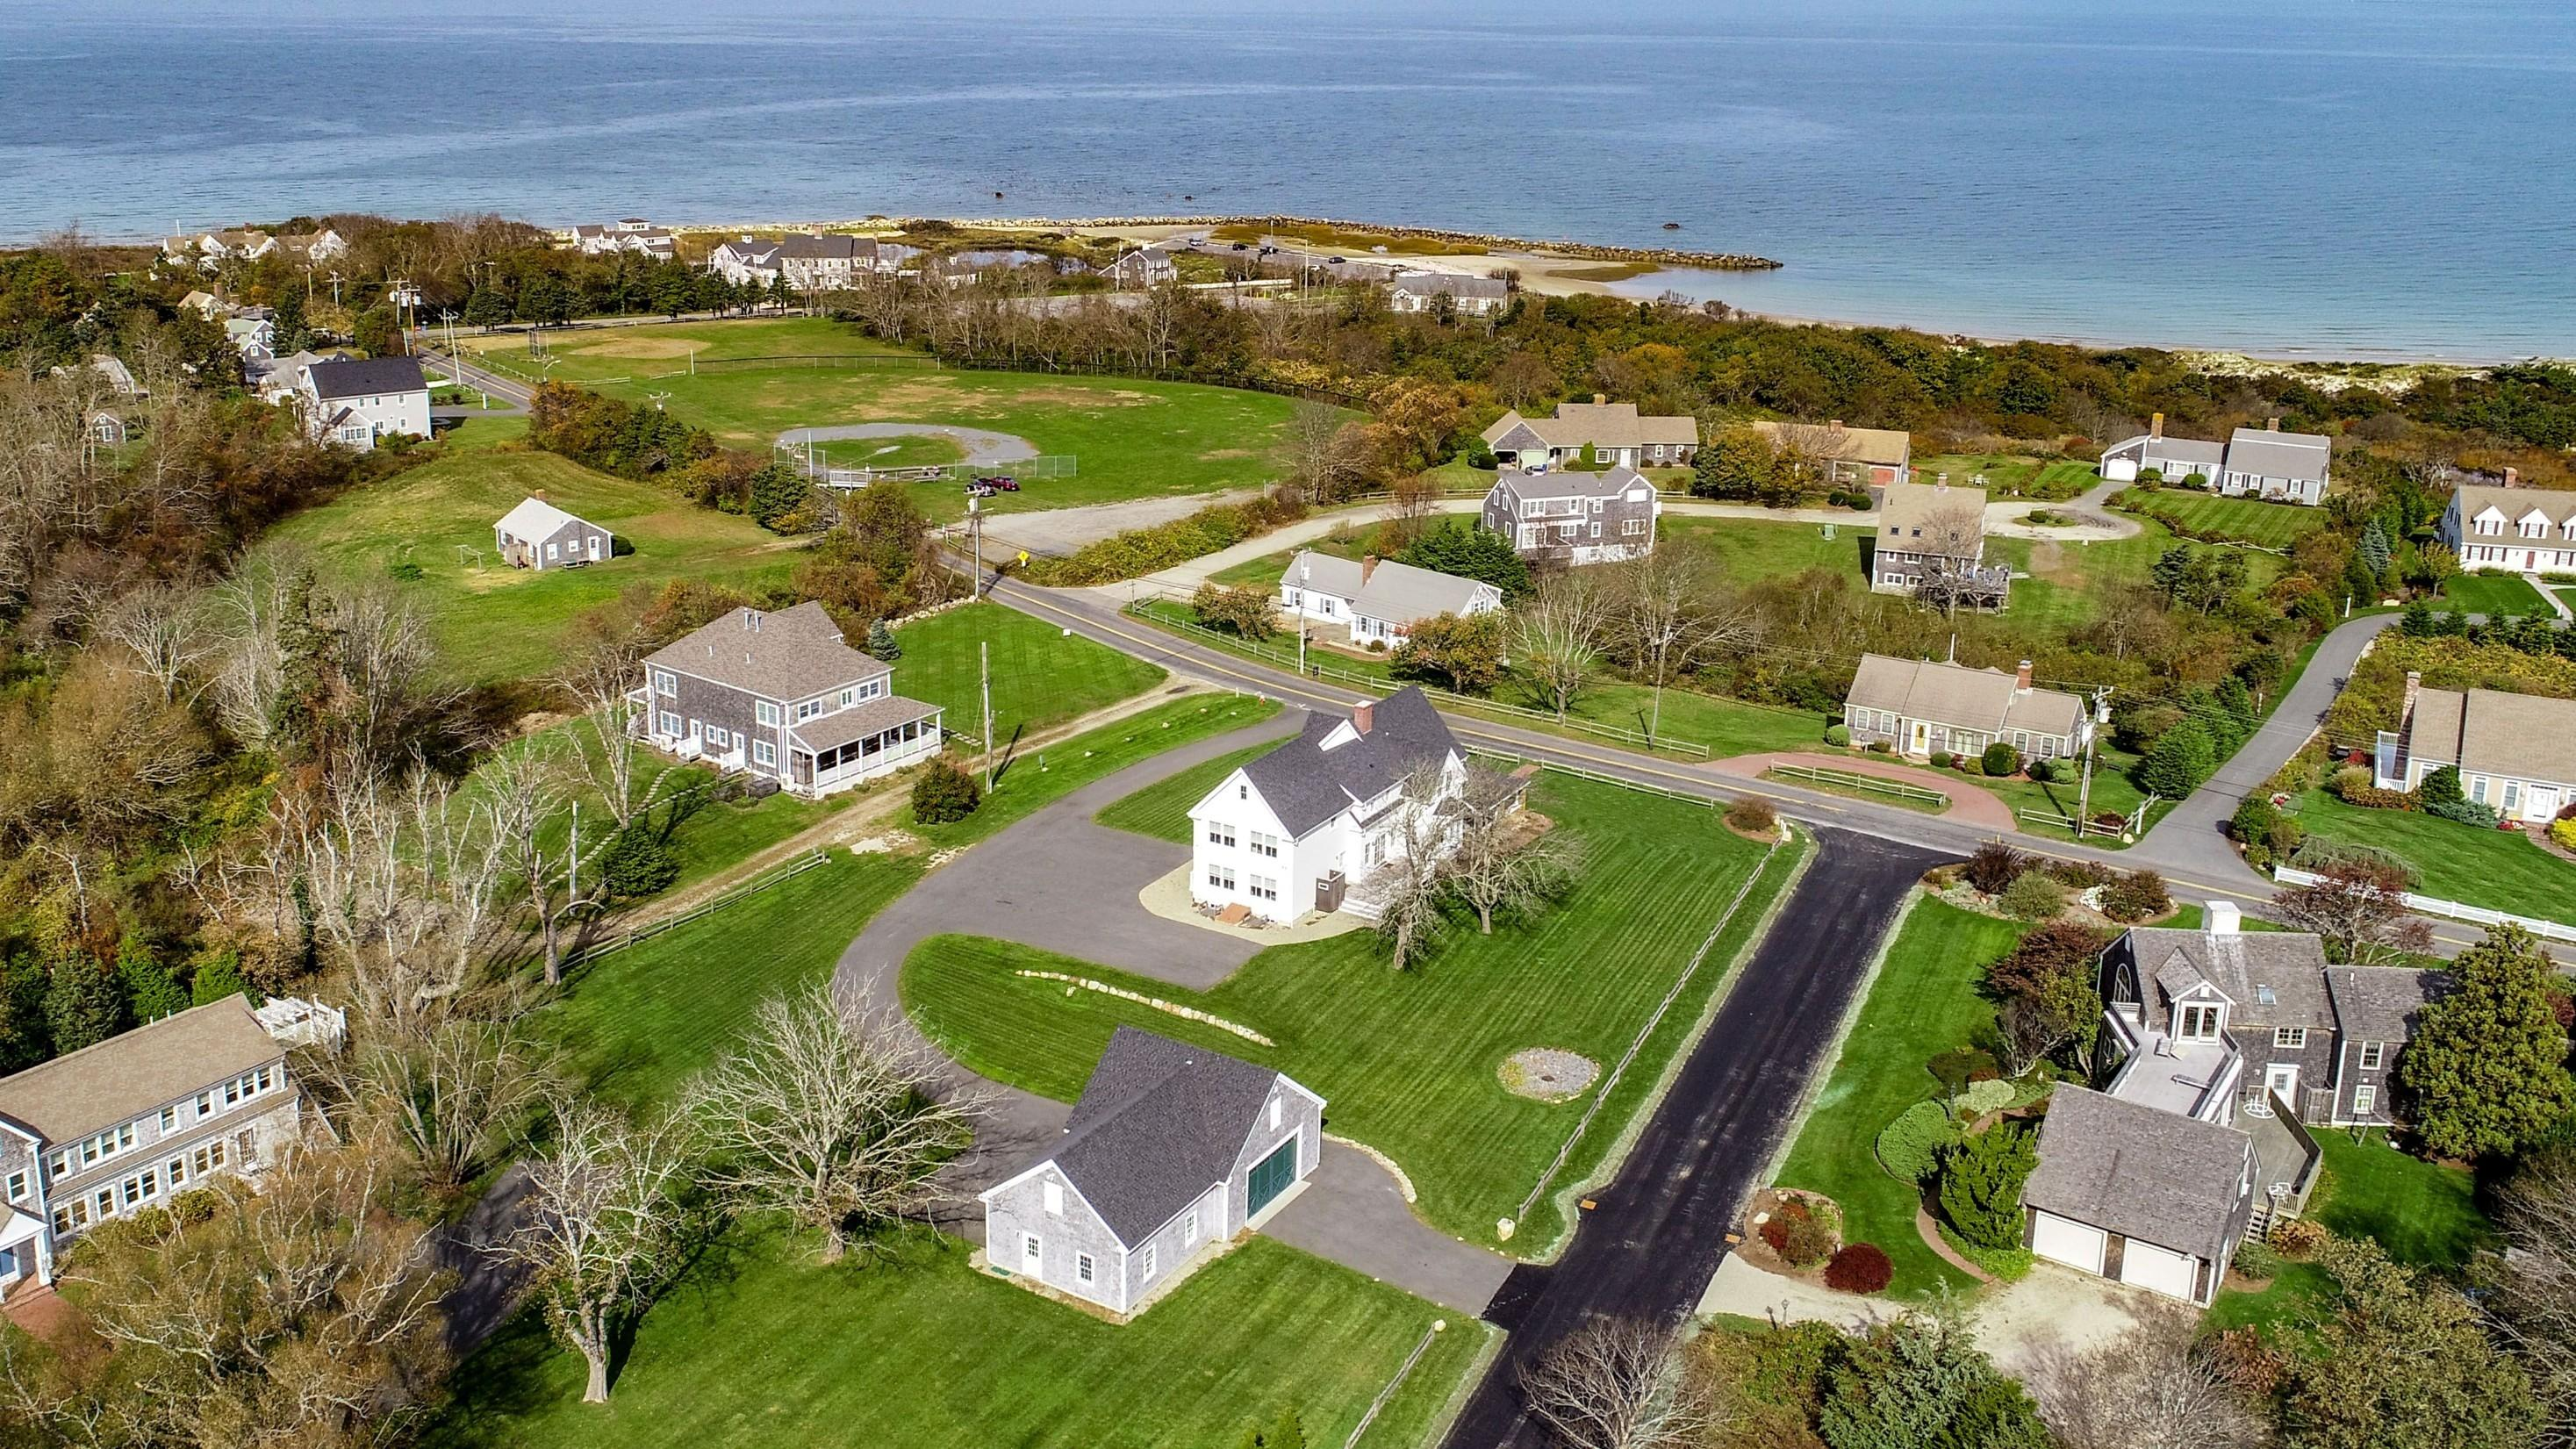 77 Seaside Avenue, Dennis MA, 02638